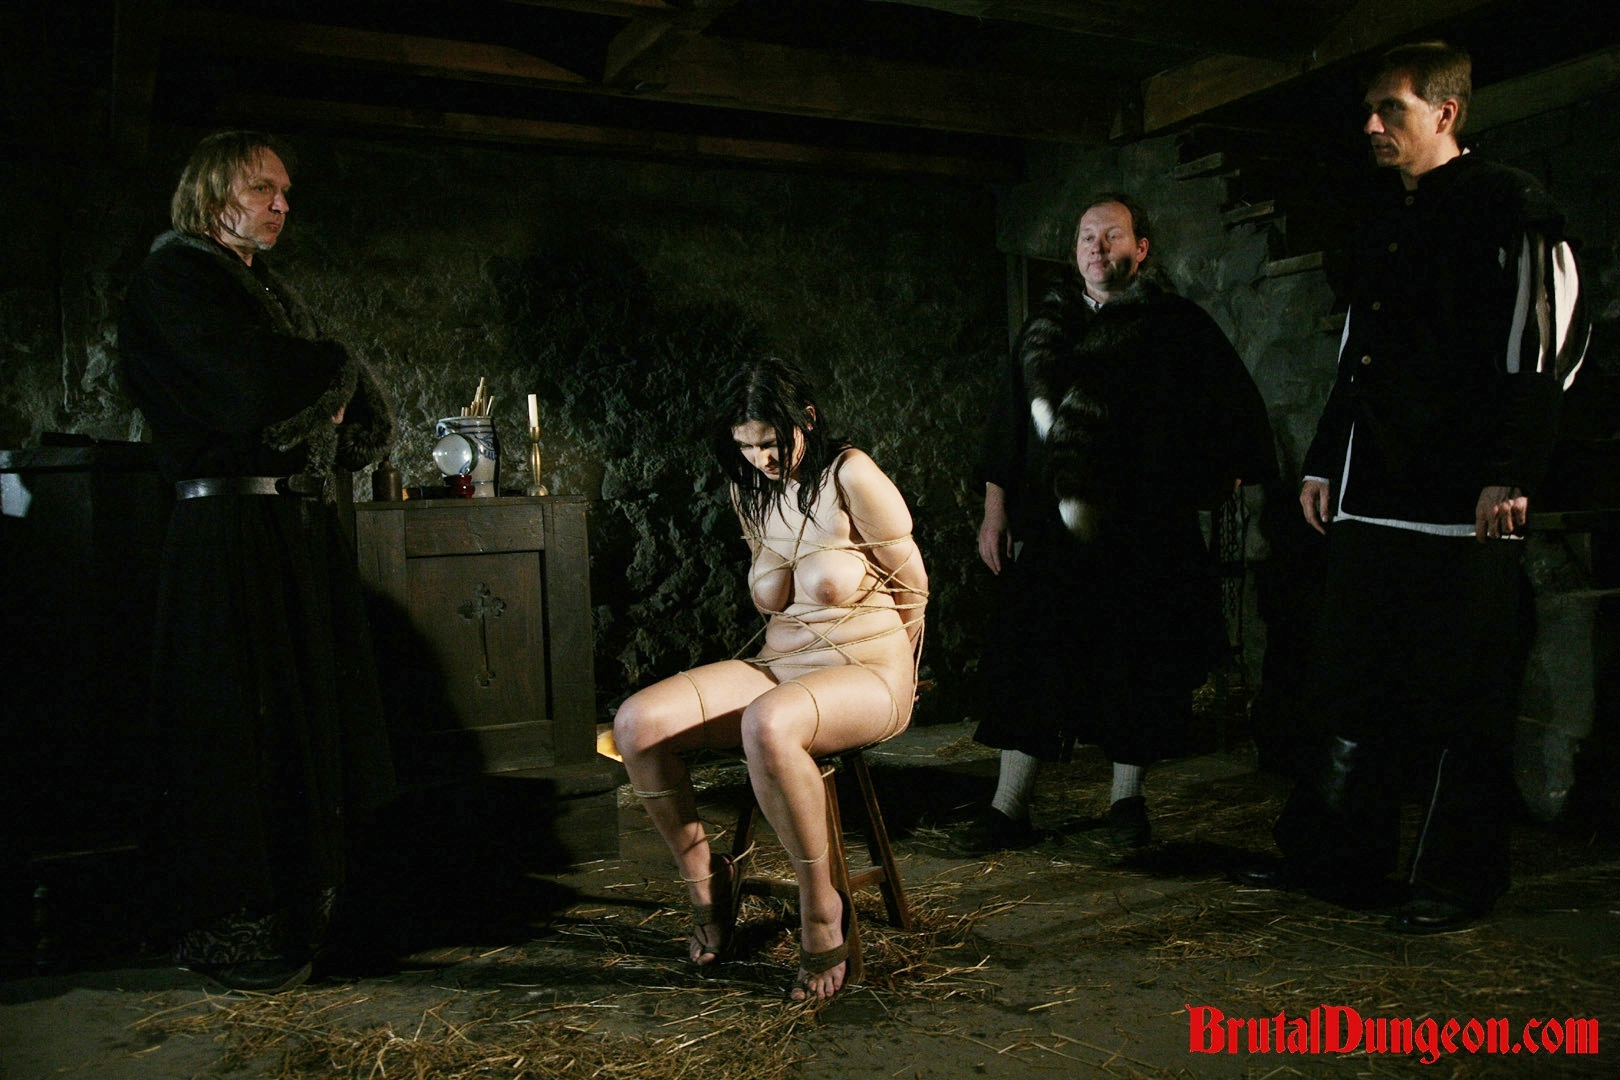 Brunette gypsy bdsm gang bang. Gypsy, a horny brunette fortune teller, will endure imprisonment, BDSM gang bang, domination, rope bondage and suspension, spanking, slapping, humiliation, fingering, breast, nipple and cunt tortured at the dungeon. It hasn't happened yet, so she masturbates and thinks about the punishment orgasm soon.